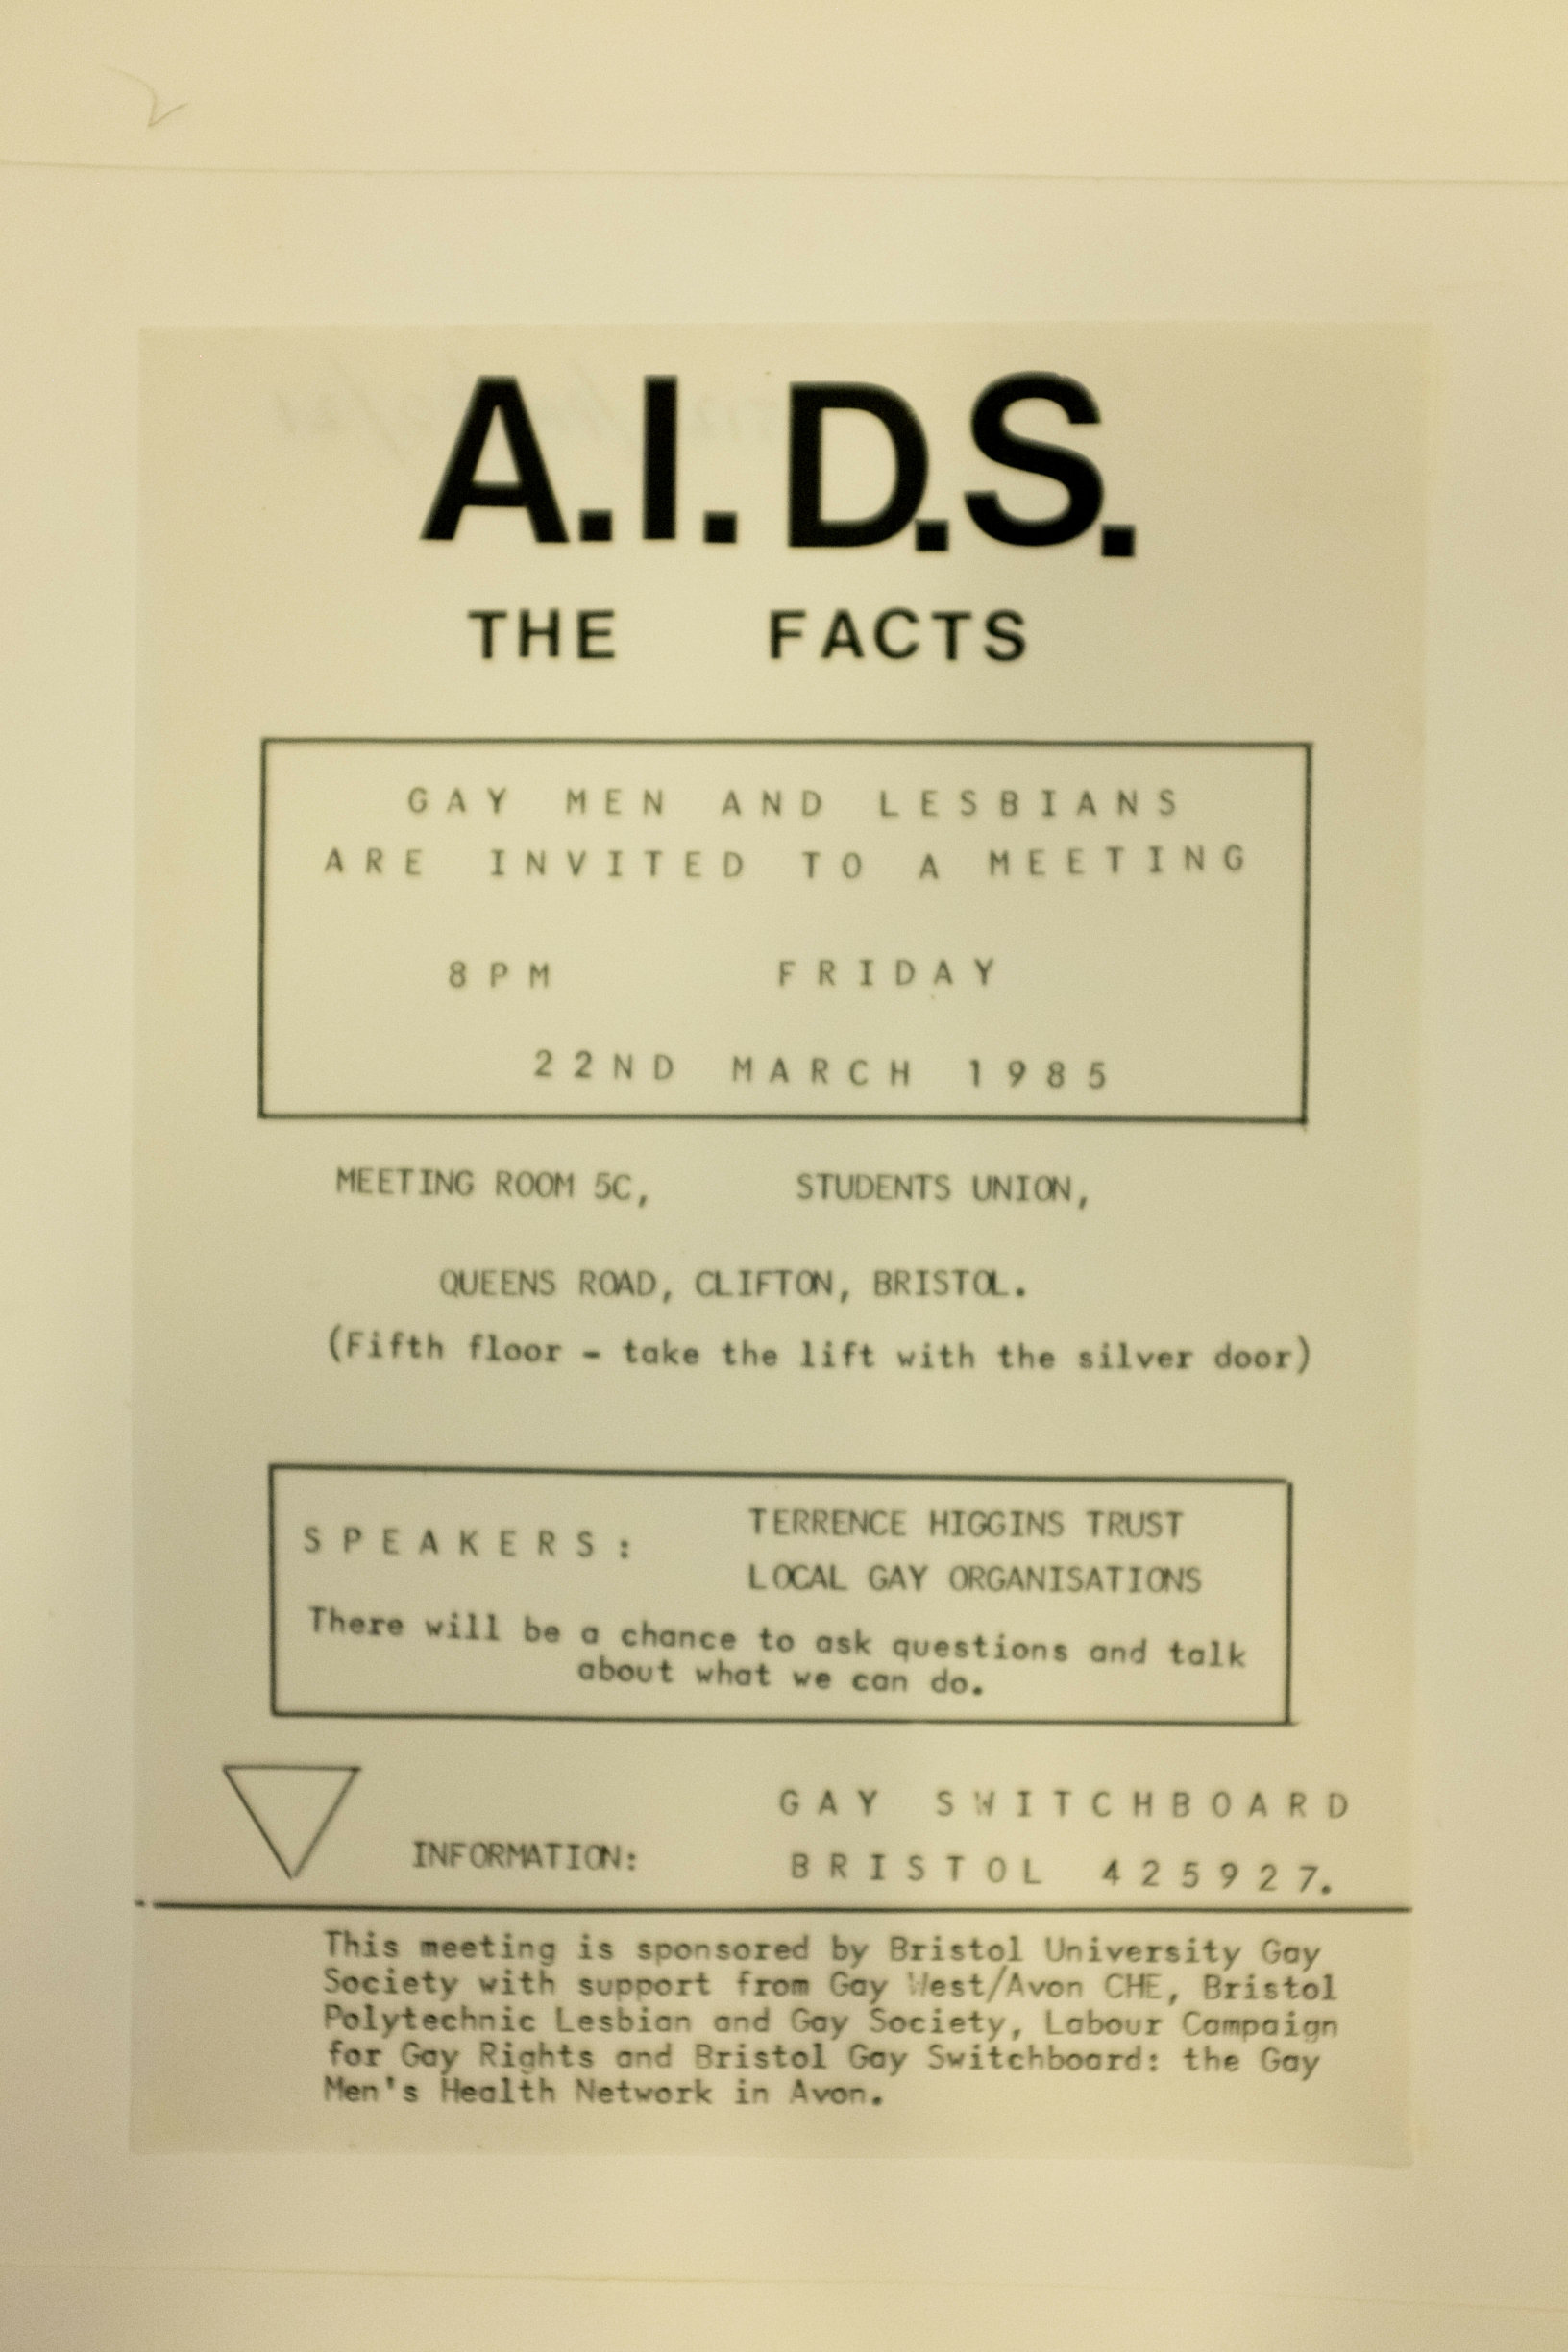 A flyer for an information session about AIDS at the University of Bristol Student Union